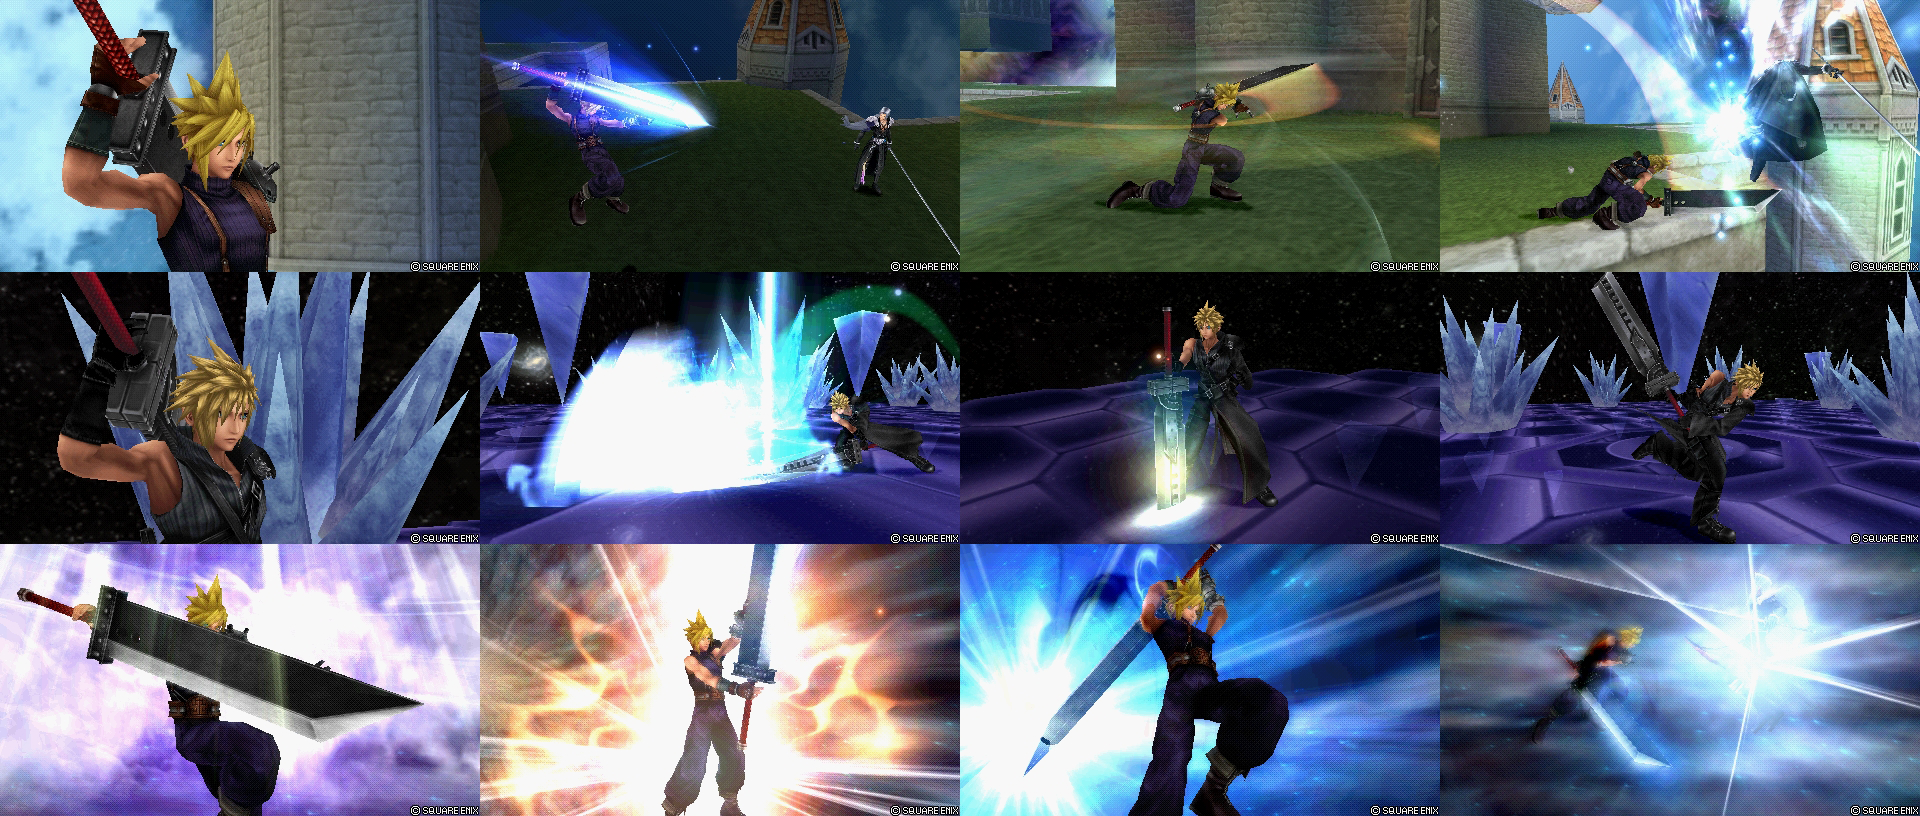 dissidia_012_mods__cloud_strife__smash_3